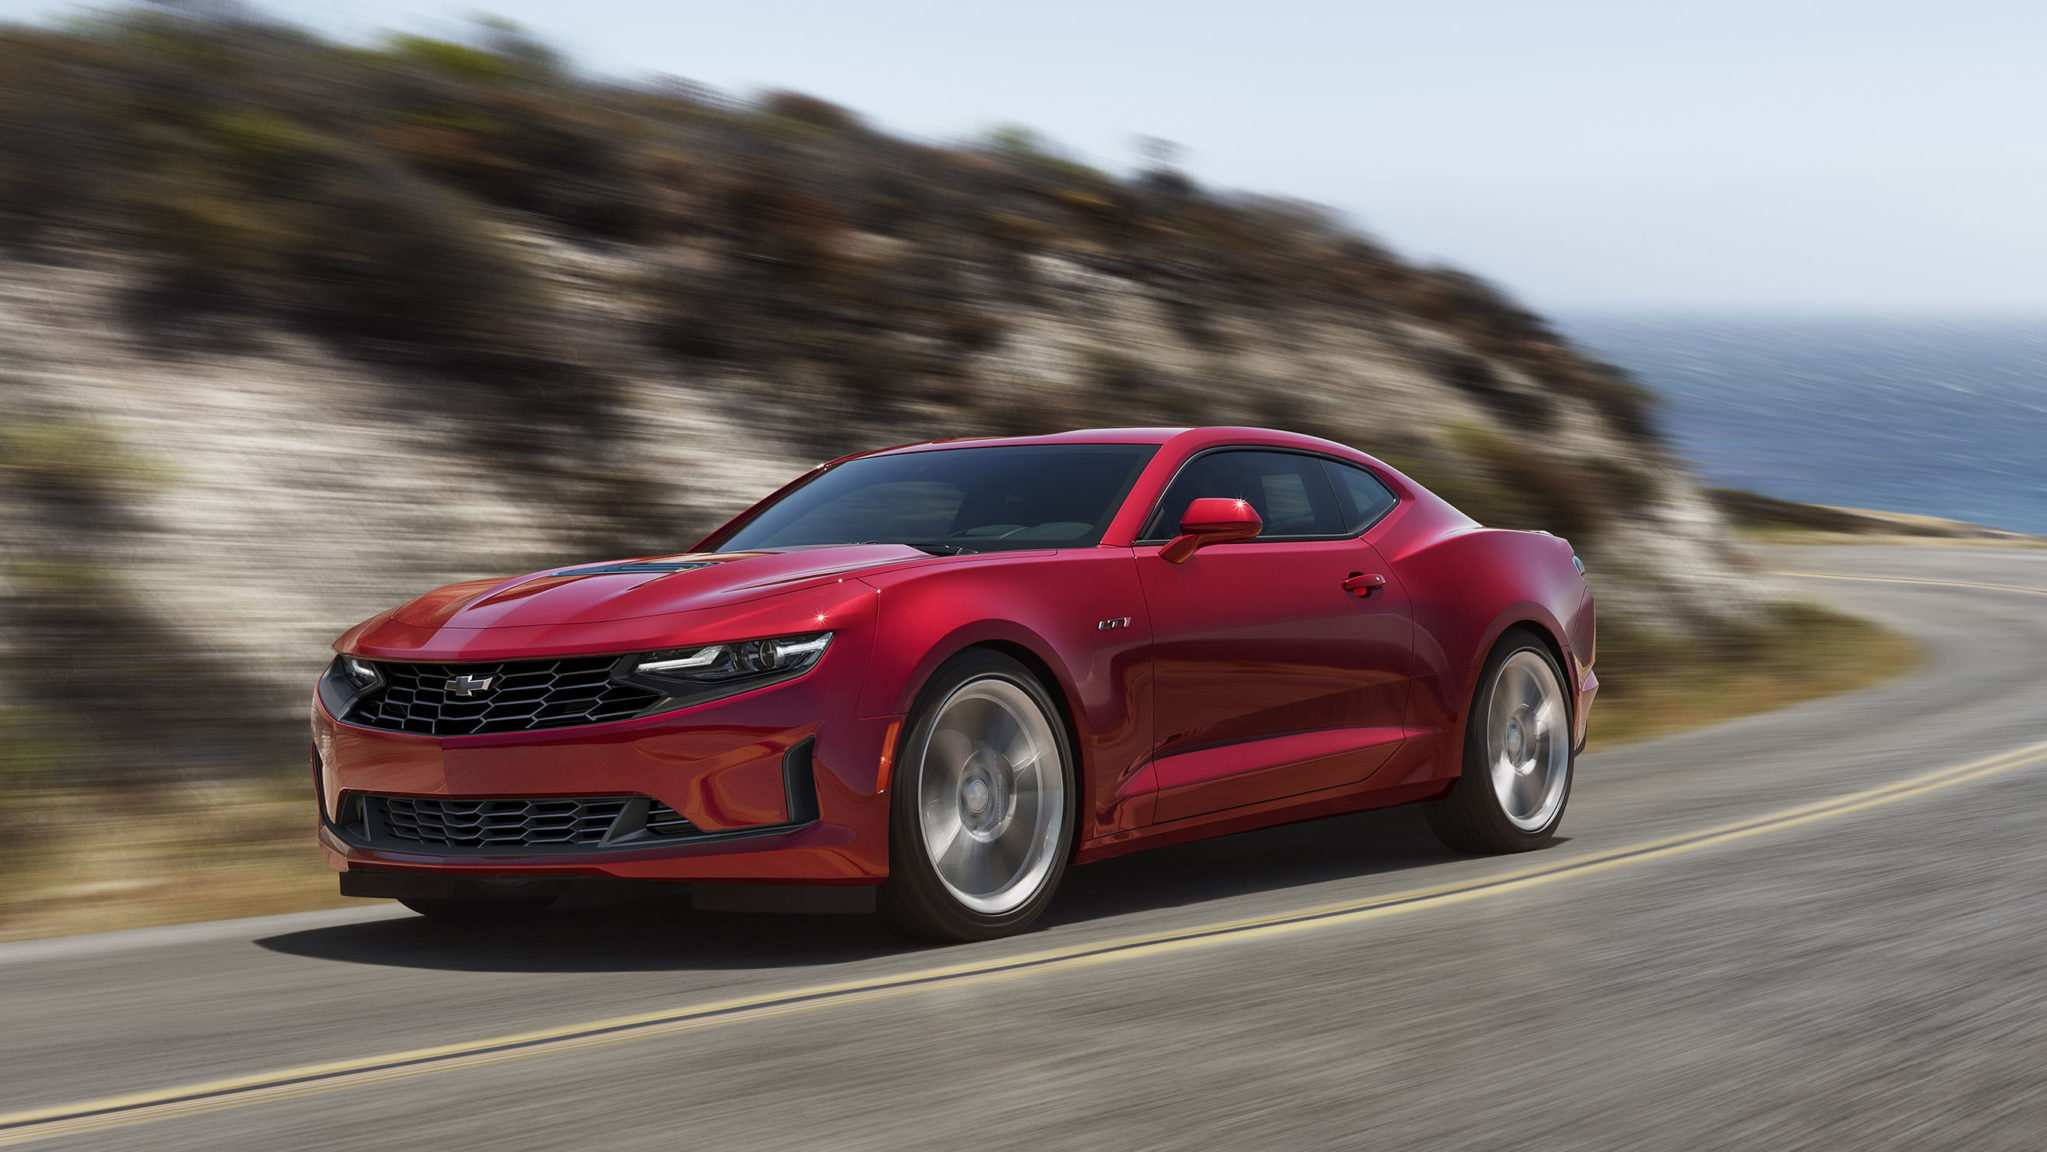 74 Best Review Chevrolet Lumina 2020 New Review with Chevrolet Lumina 2020